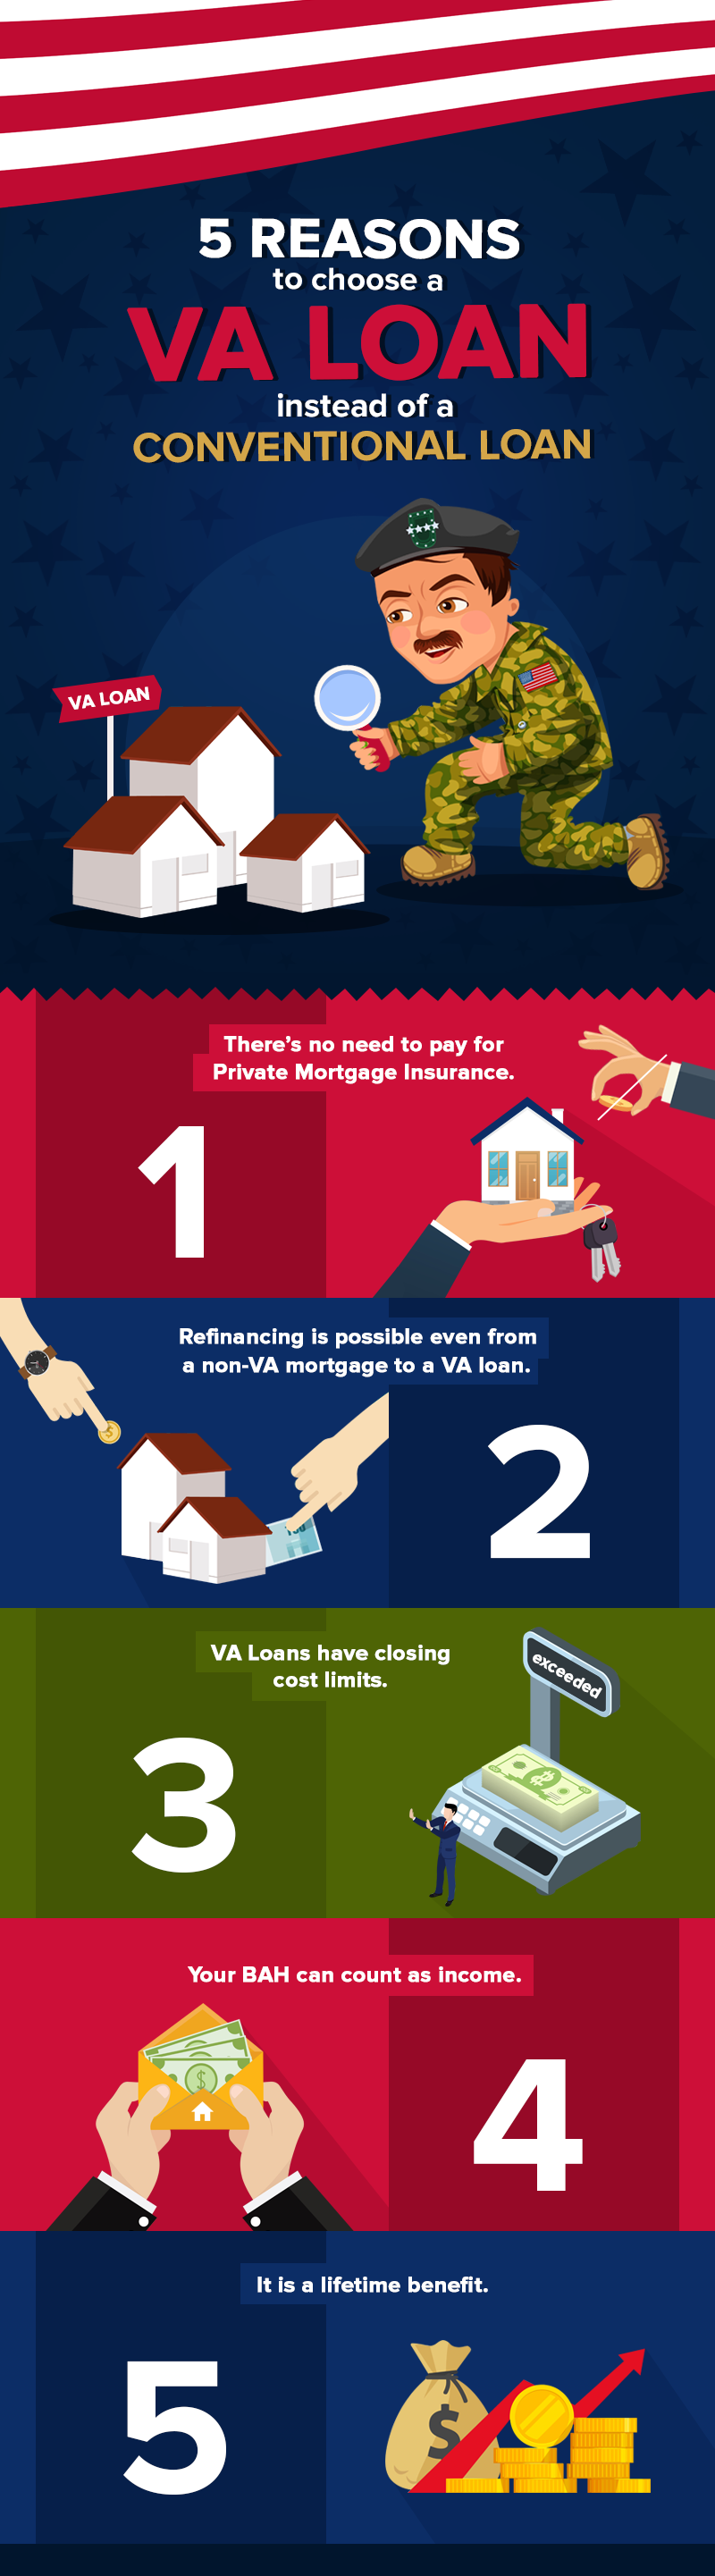 Military Home Buyers: 5 Reasons To Choose A VA Loan Instead of A Conventional Loan